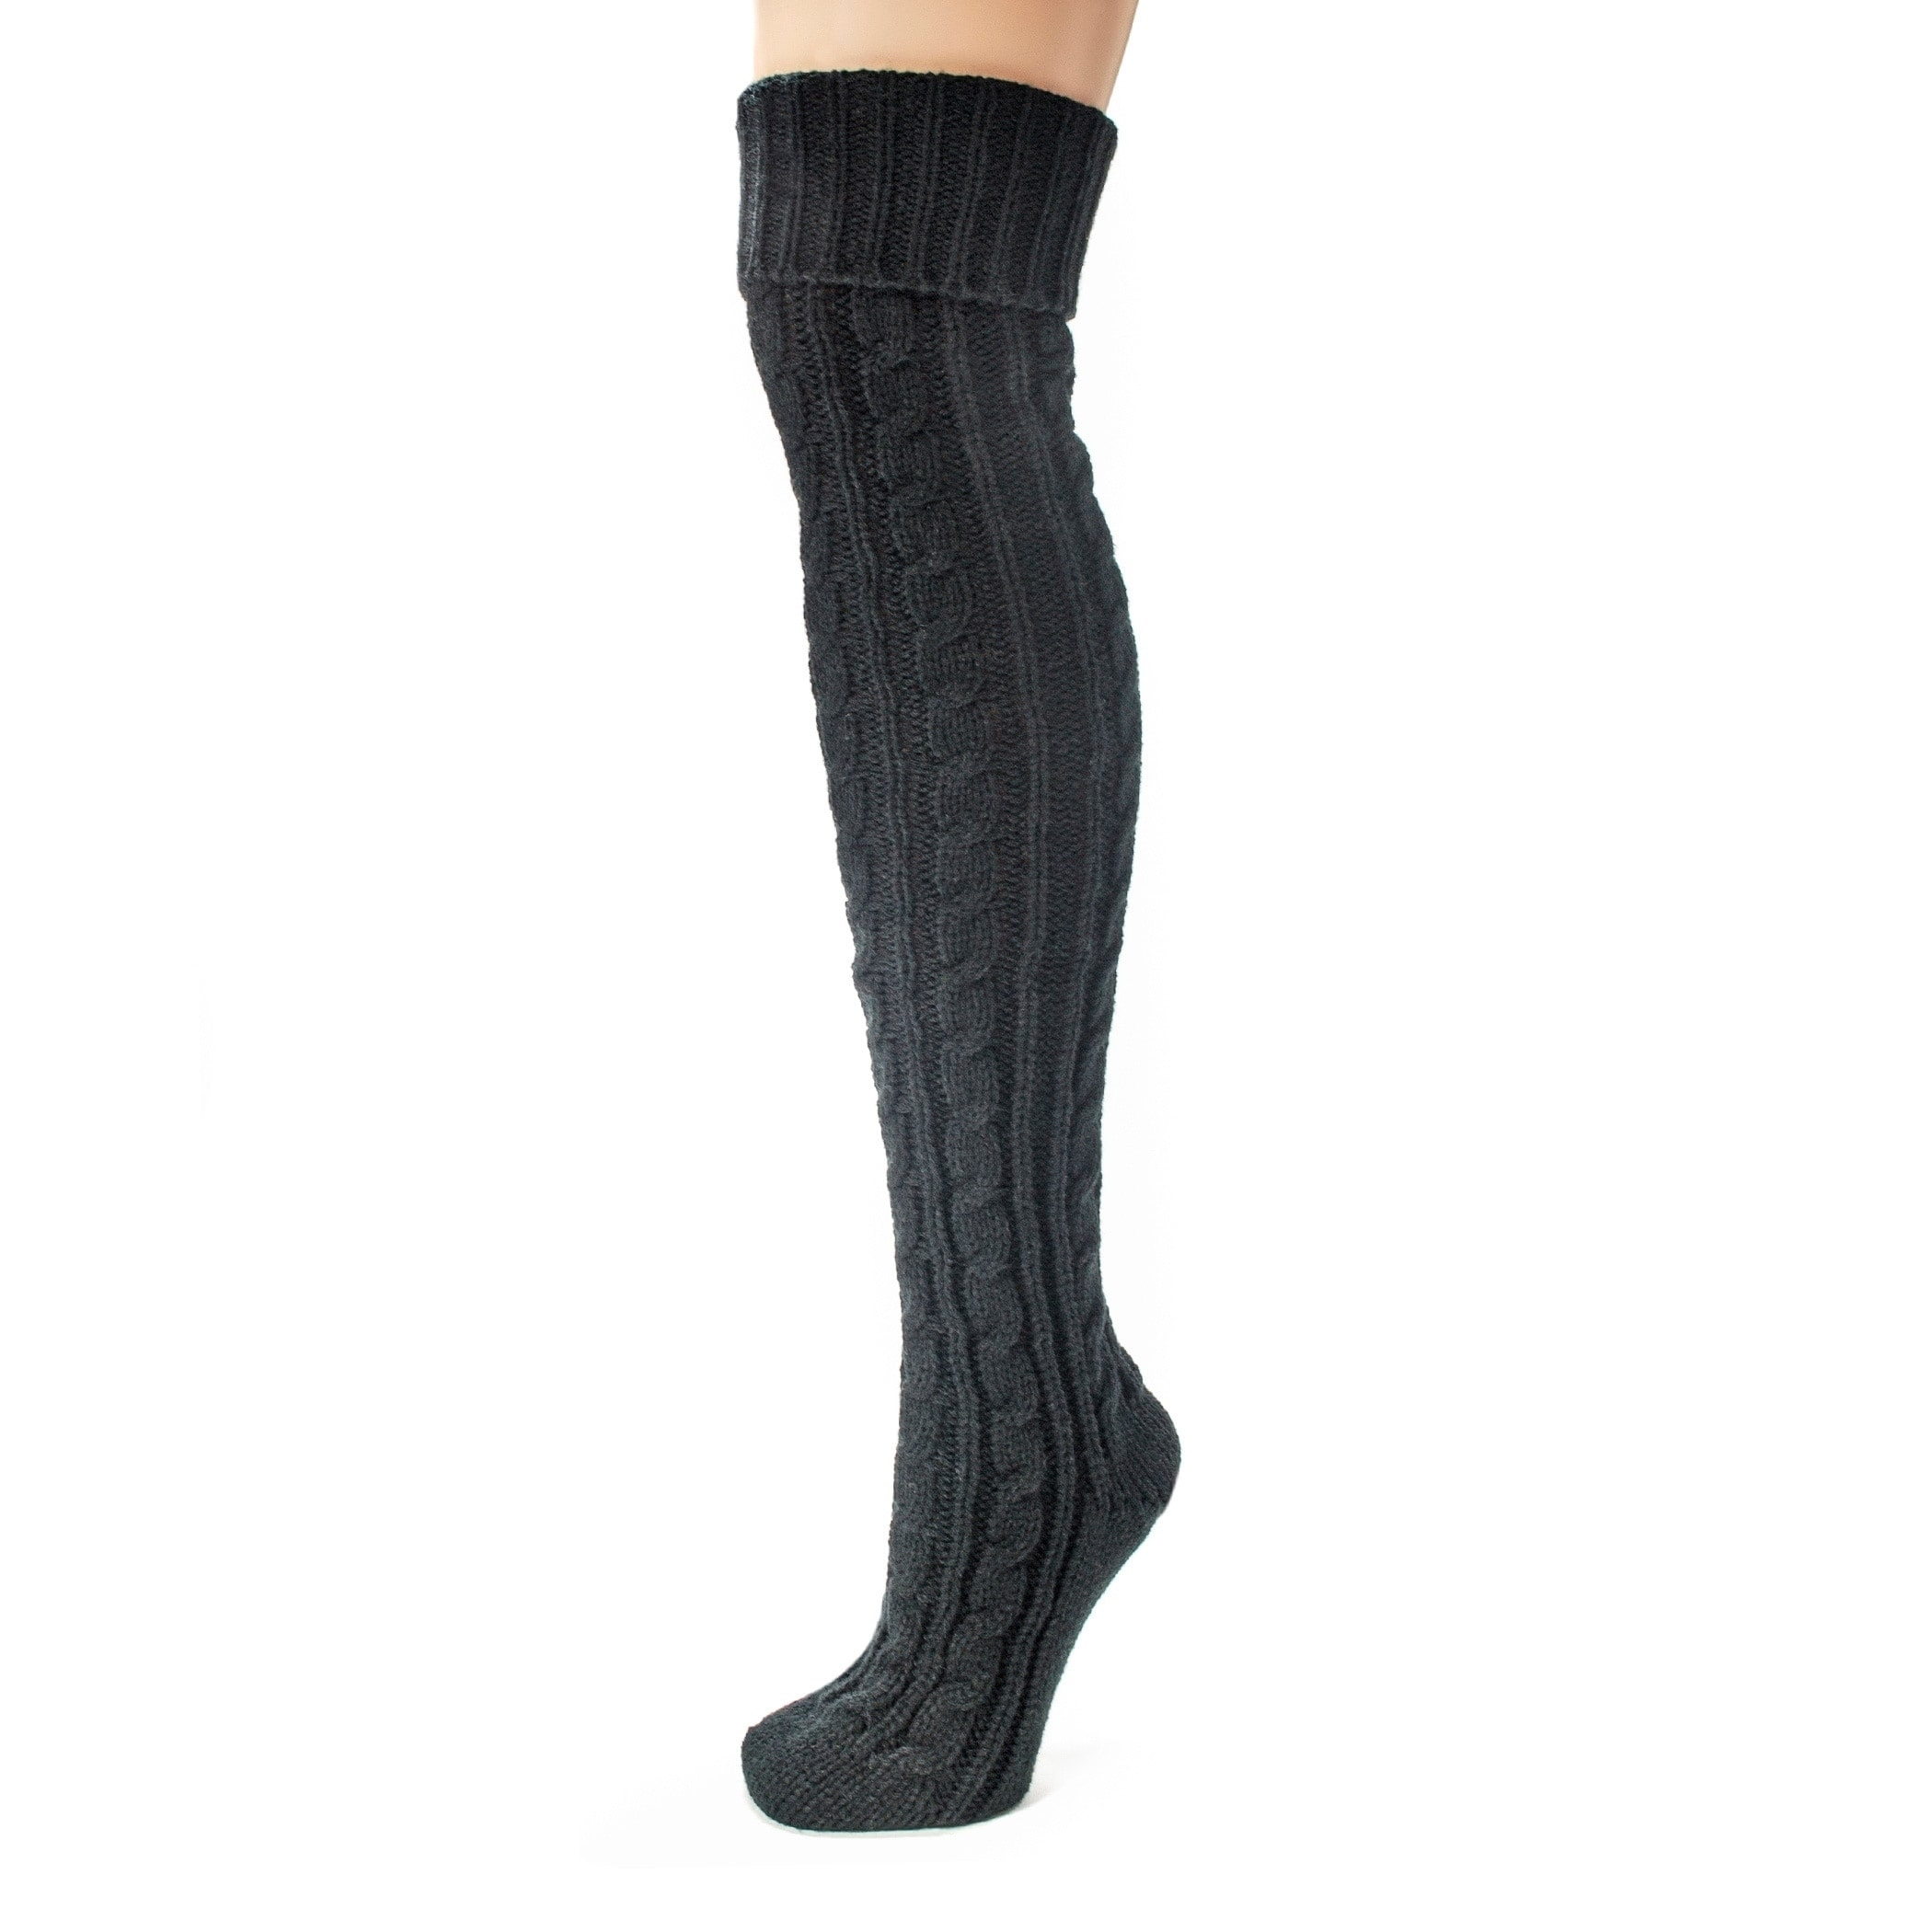 Shop Muk Luks Women\'s Black Cable Knit Over the Knee Socks - Free ...